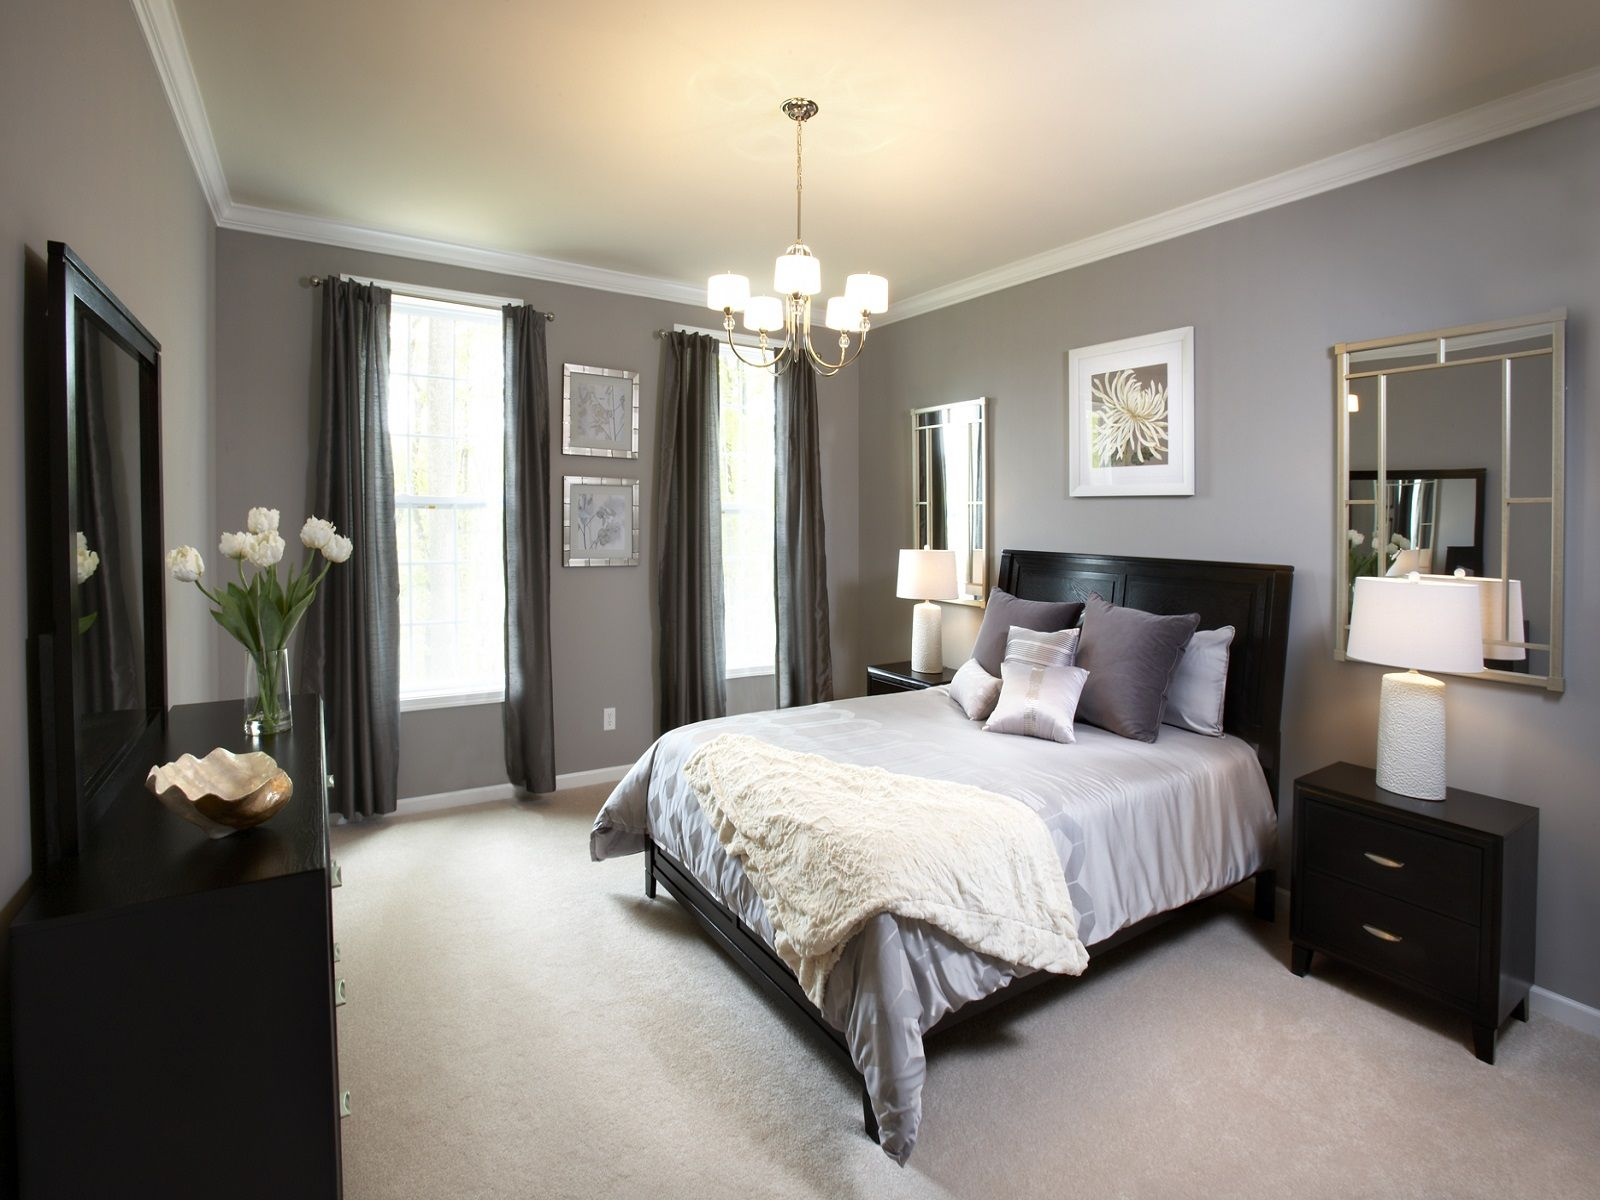 Master bedroom grey paint ideas - 17 Best Ideas About Grey Bedroom Furniture On Pinterest Grey Furniture Inspiration Grey Wall Mirrors And Refinished Bedroom Furniture